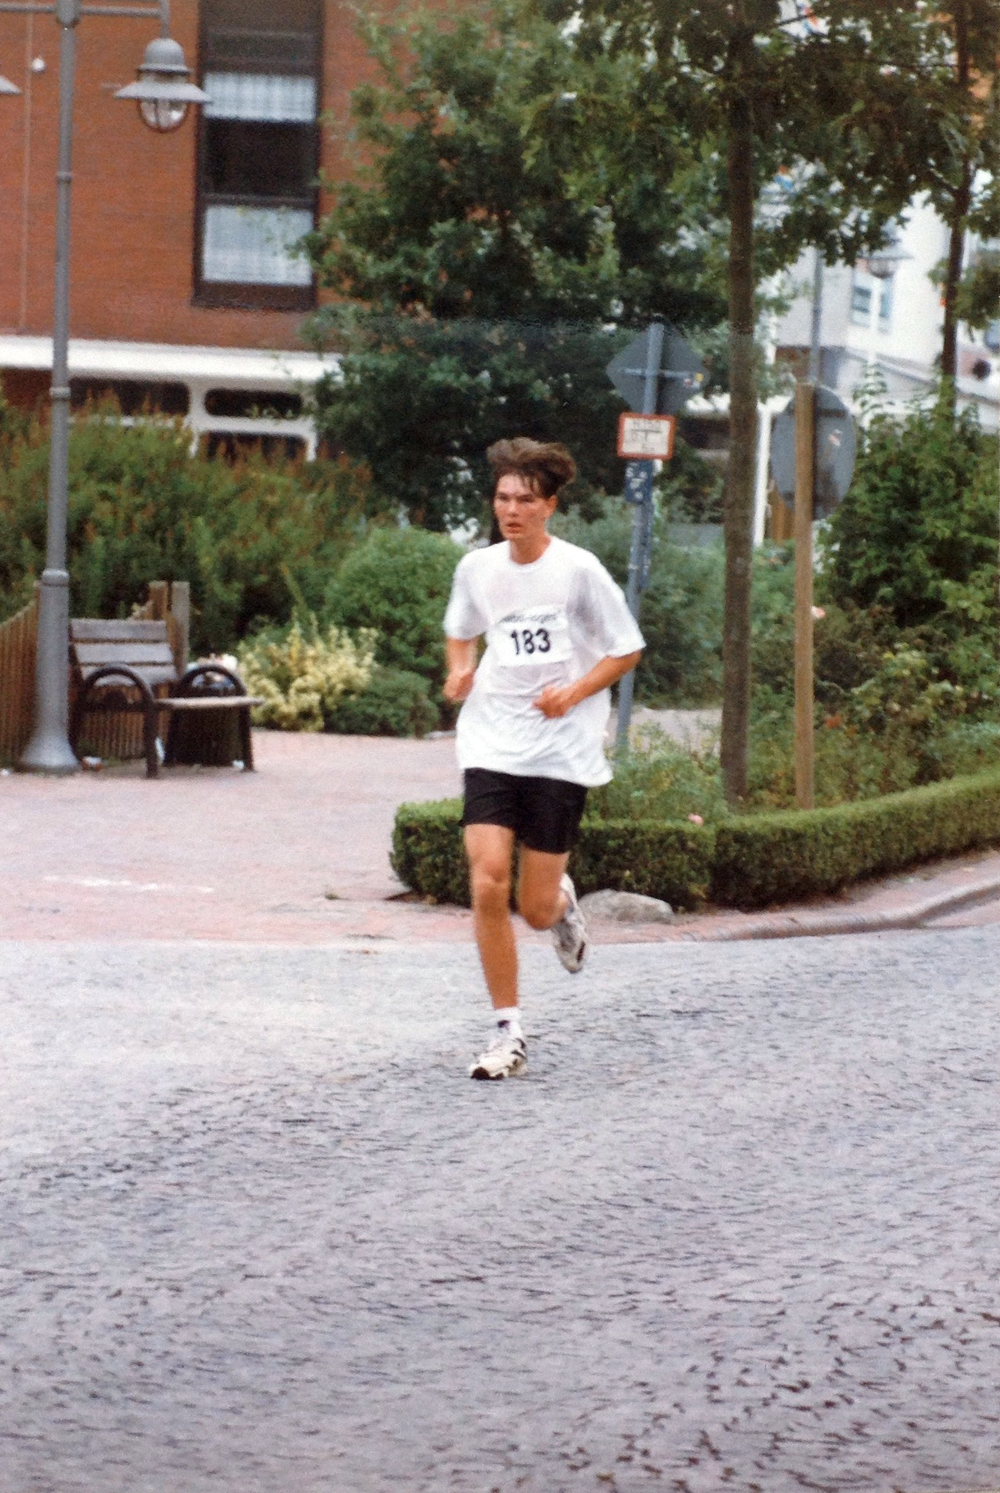 A younger me, running 1996 in Germany